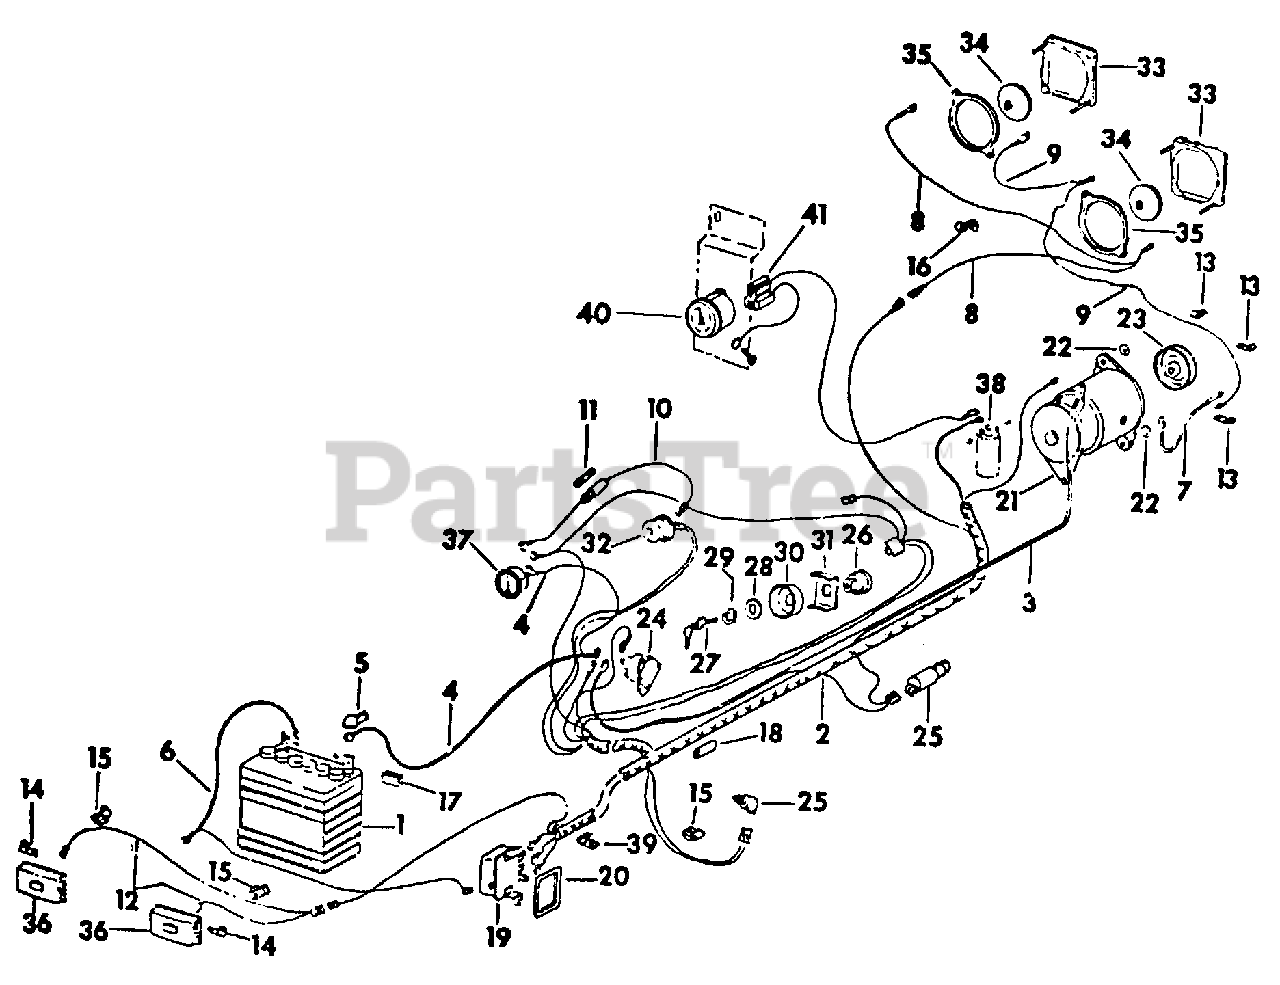 Cub Cadet Parts on the Starting & Lighting Diagram for 169